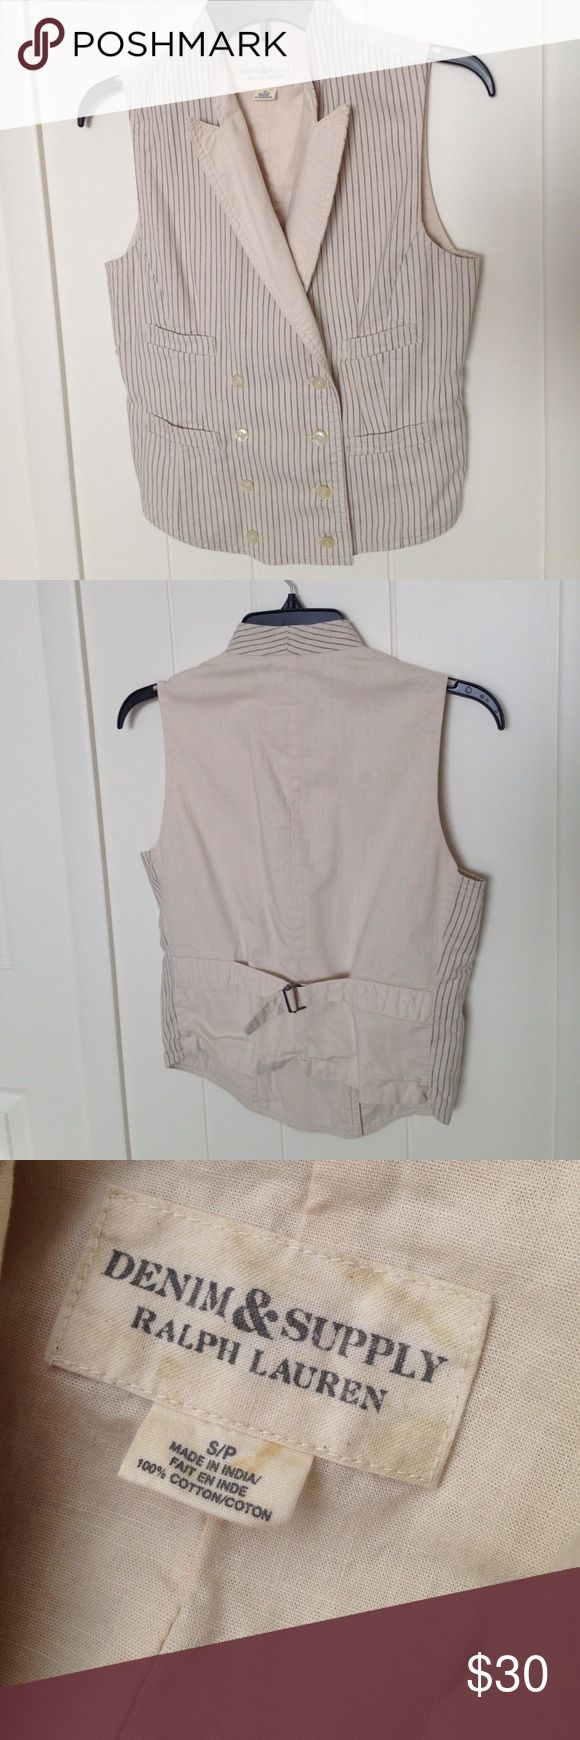 Denim & Supply Casual Vest Cream vest with black pinstripes in the front. Adjustable buckle on the back and on the front there are buttons and small pockets. Great for dressing gown up or down Denim & Supply Ralph Lauren Jackets & Coats Vests